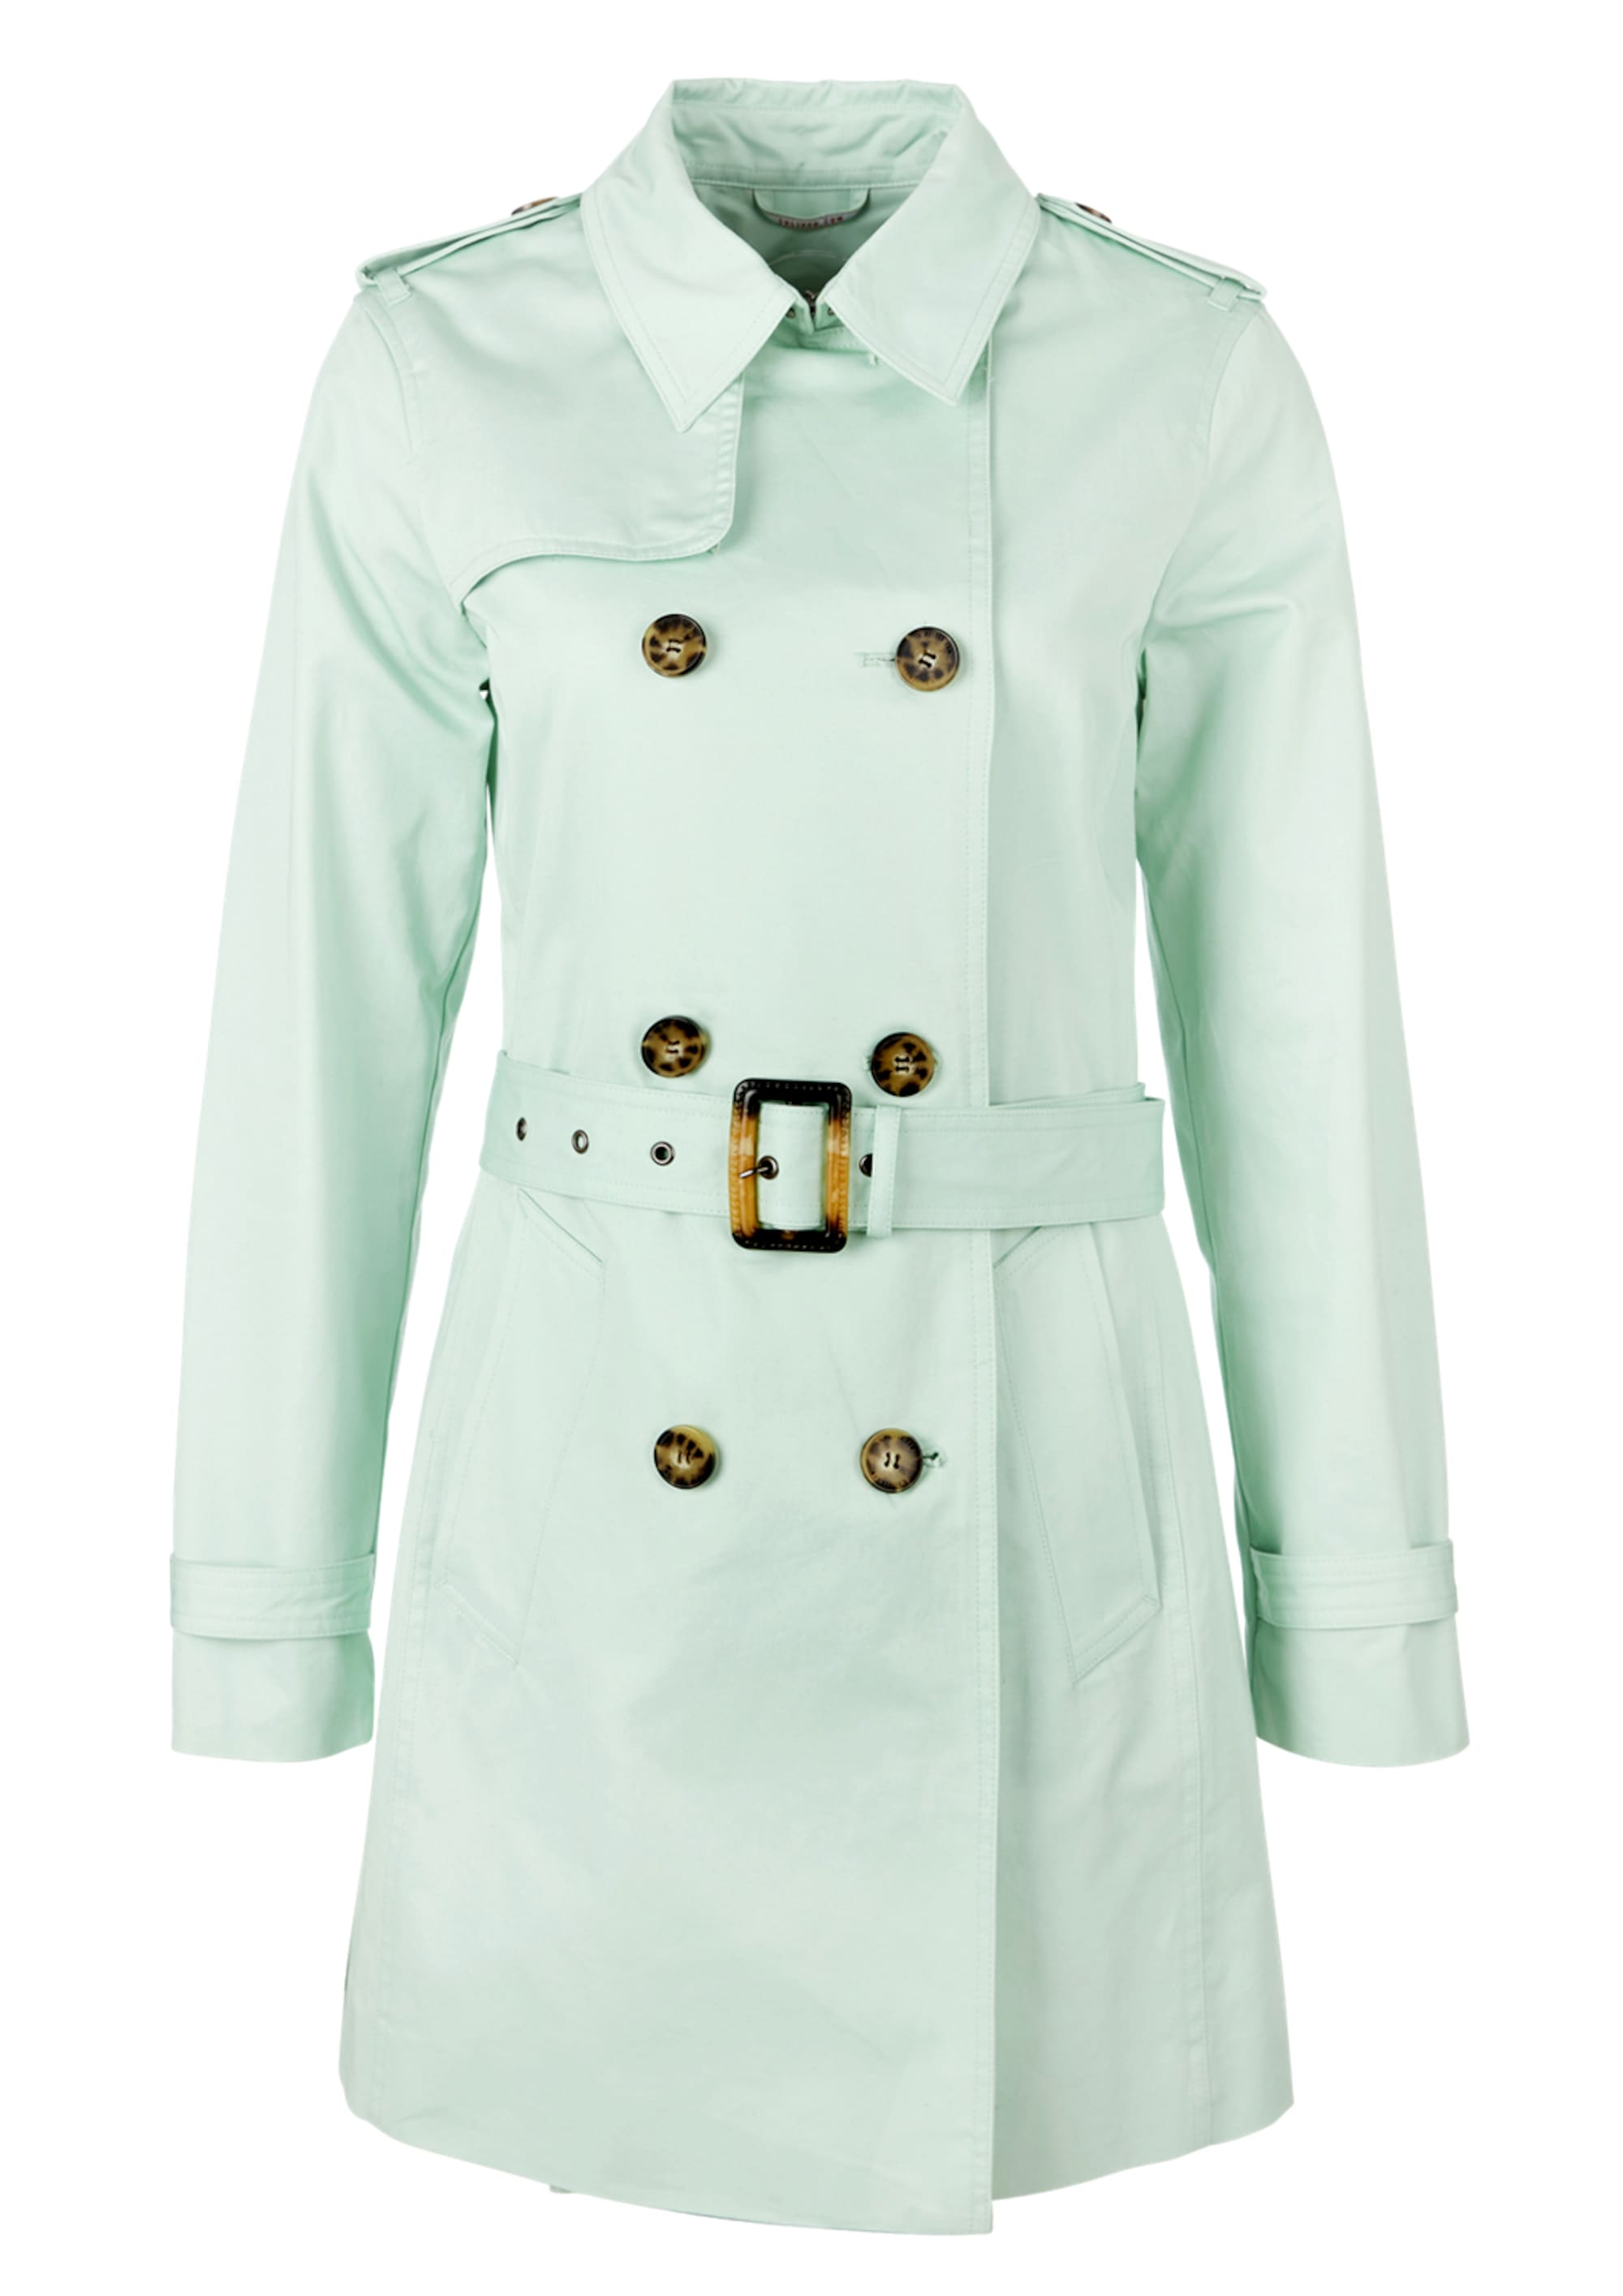 s.oliver red label - Klassischer Trenchcoat